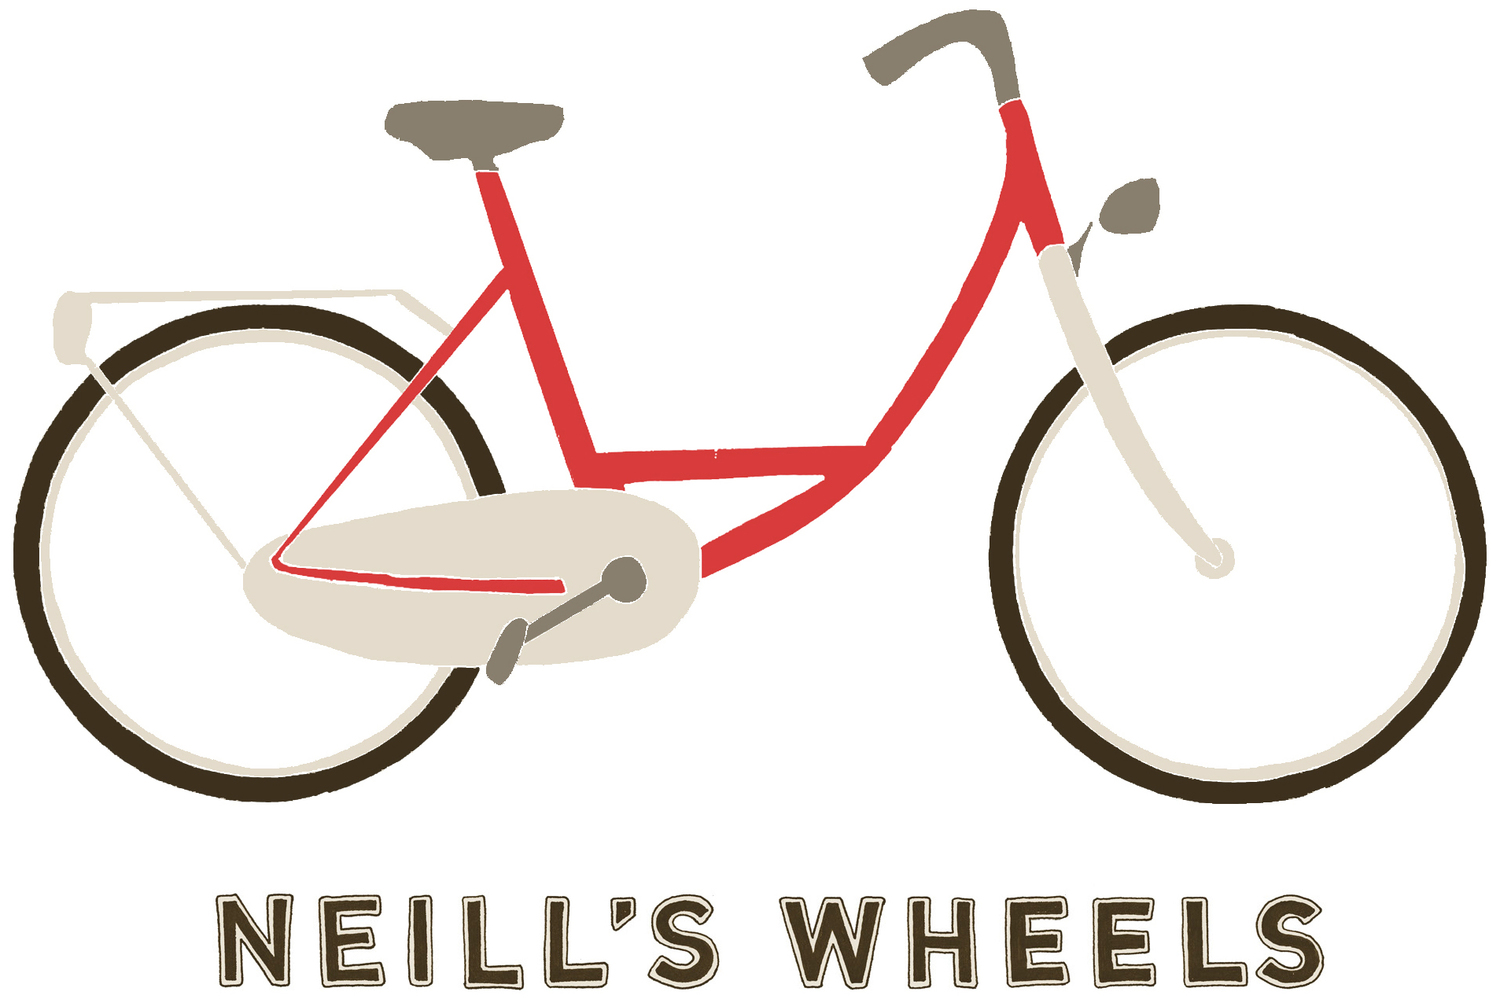 Neill's Wheels